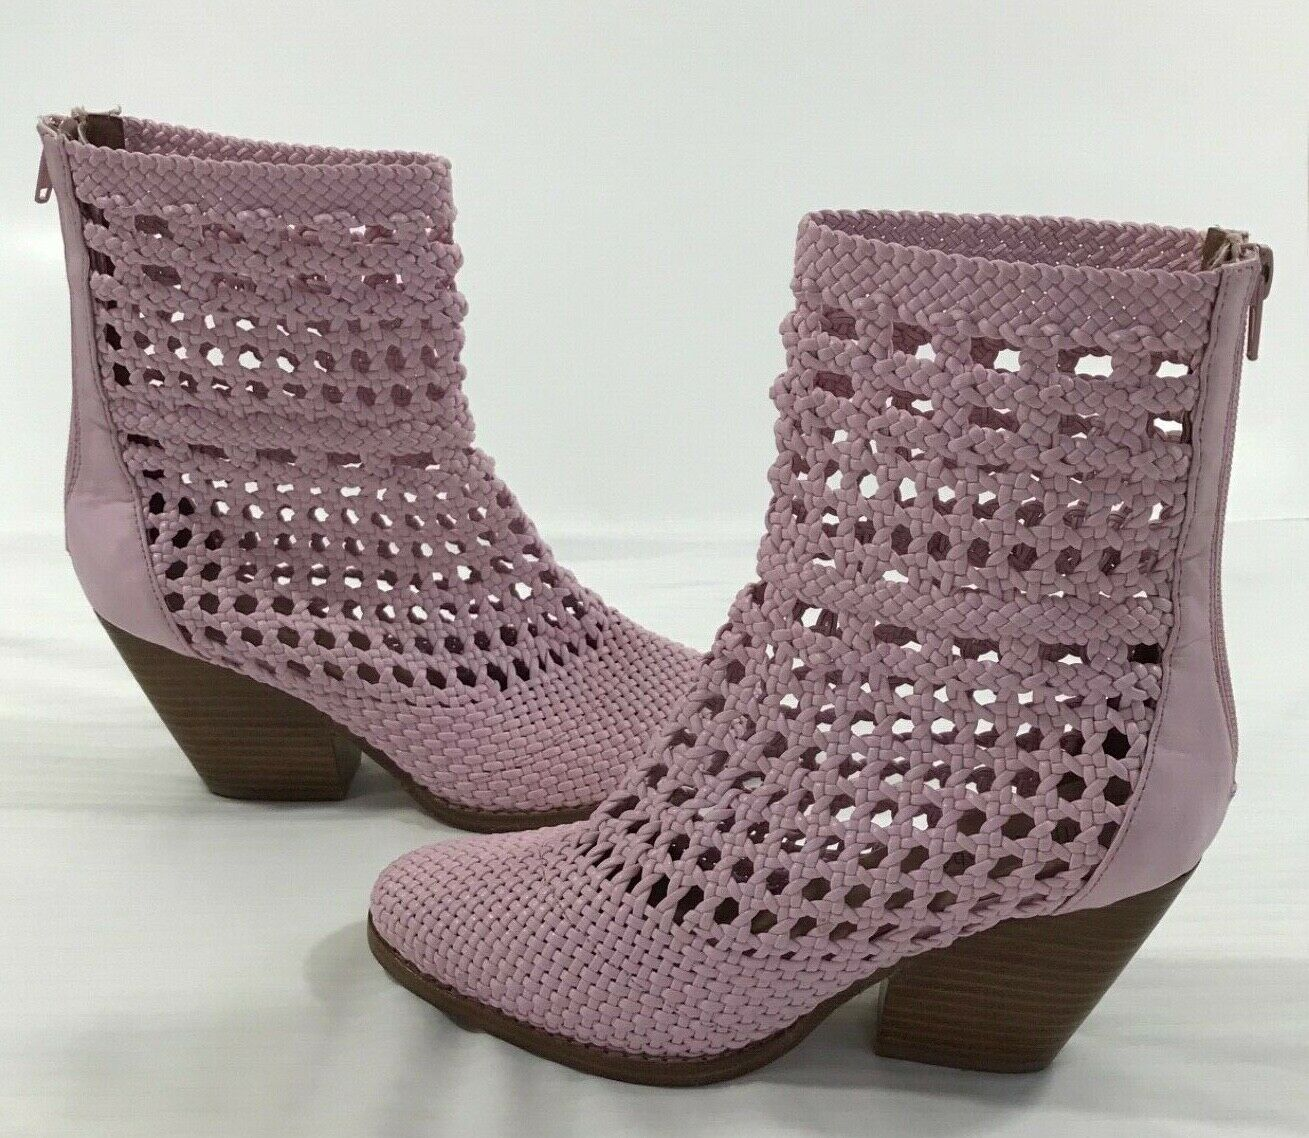 Jeffrey Campbell Ankle Boots Booties Size 8.5 Pink Perforated Lattice Weaved